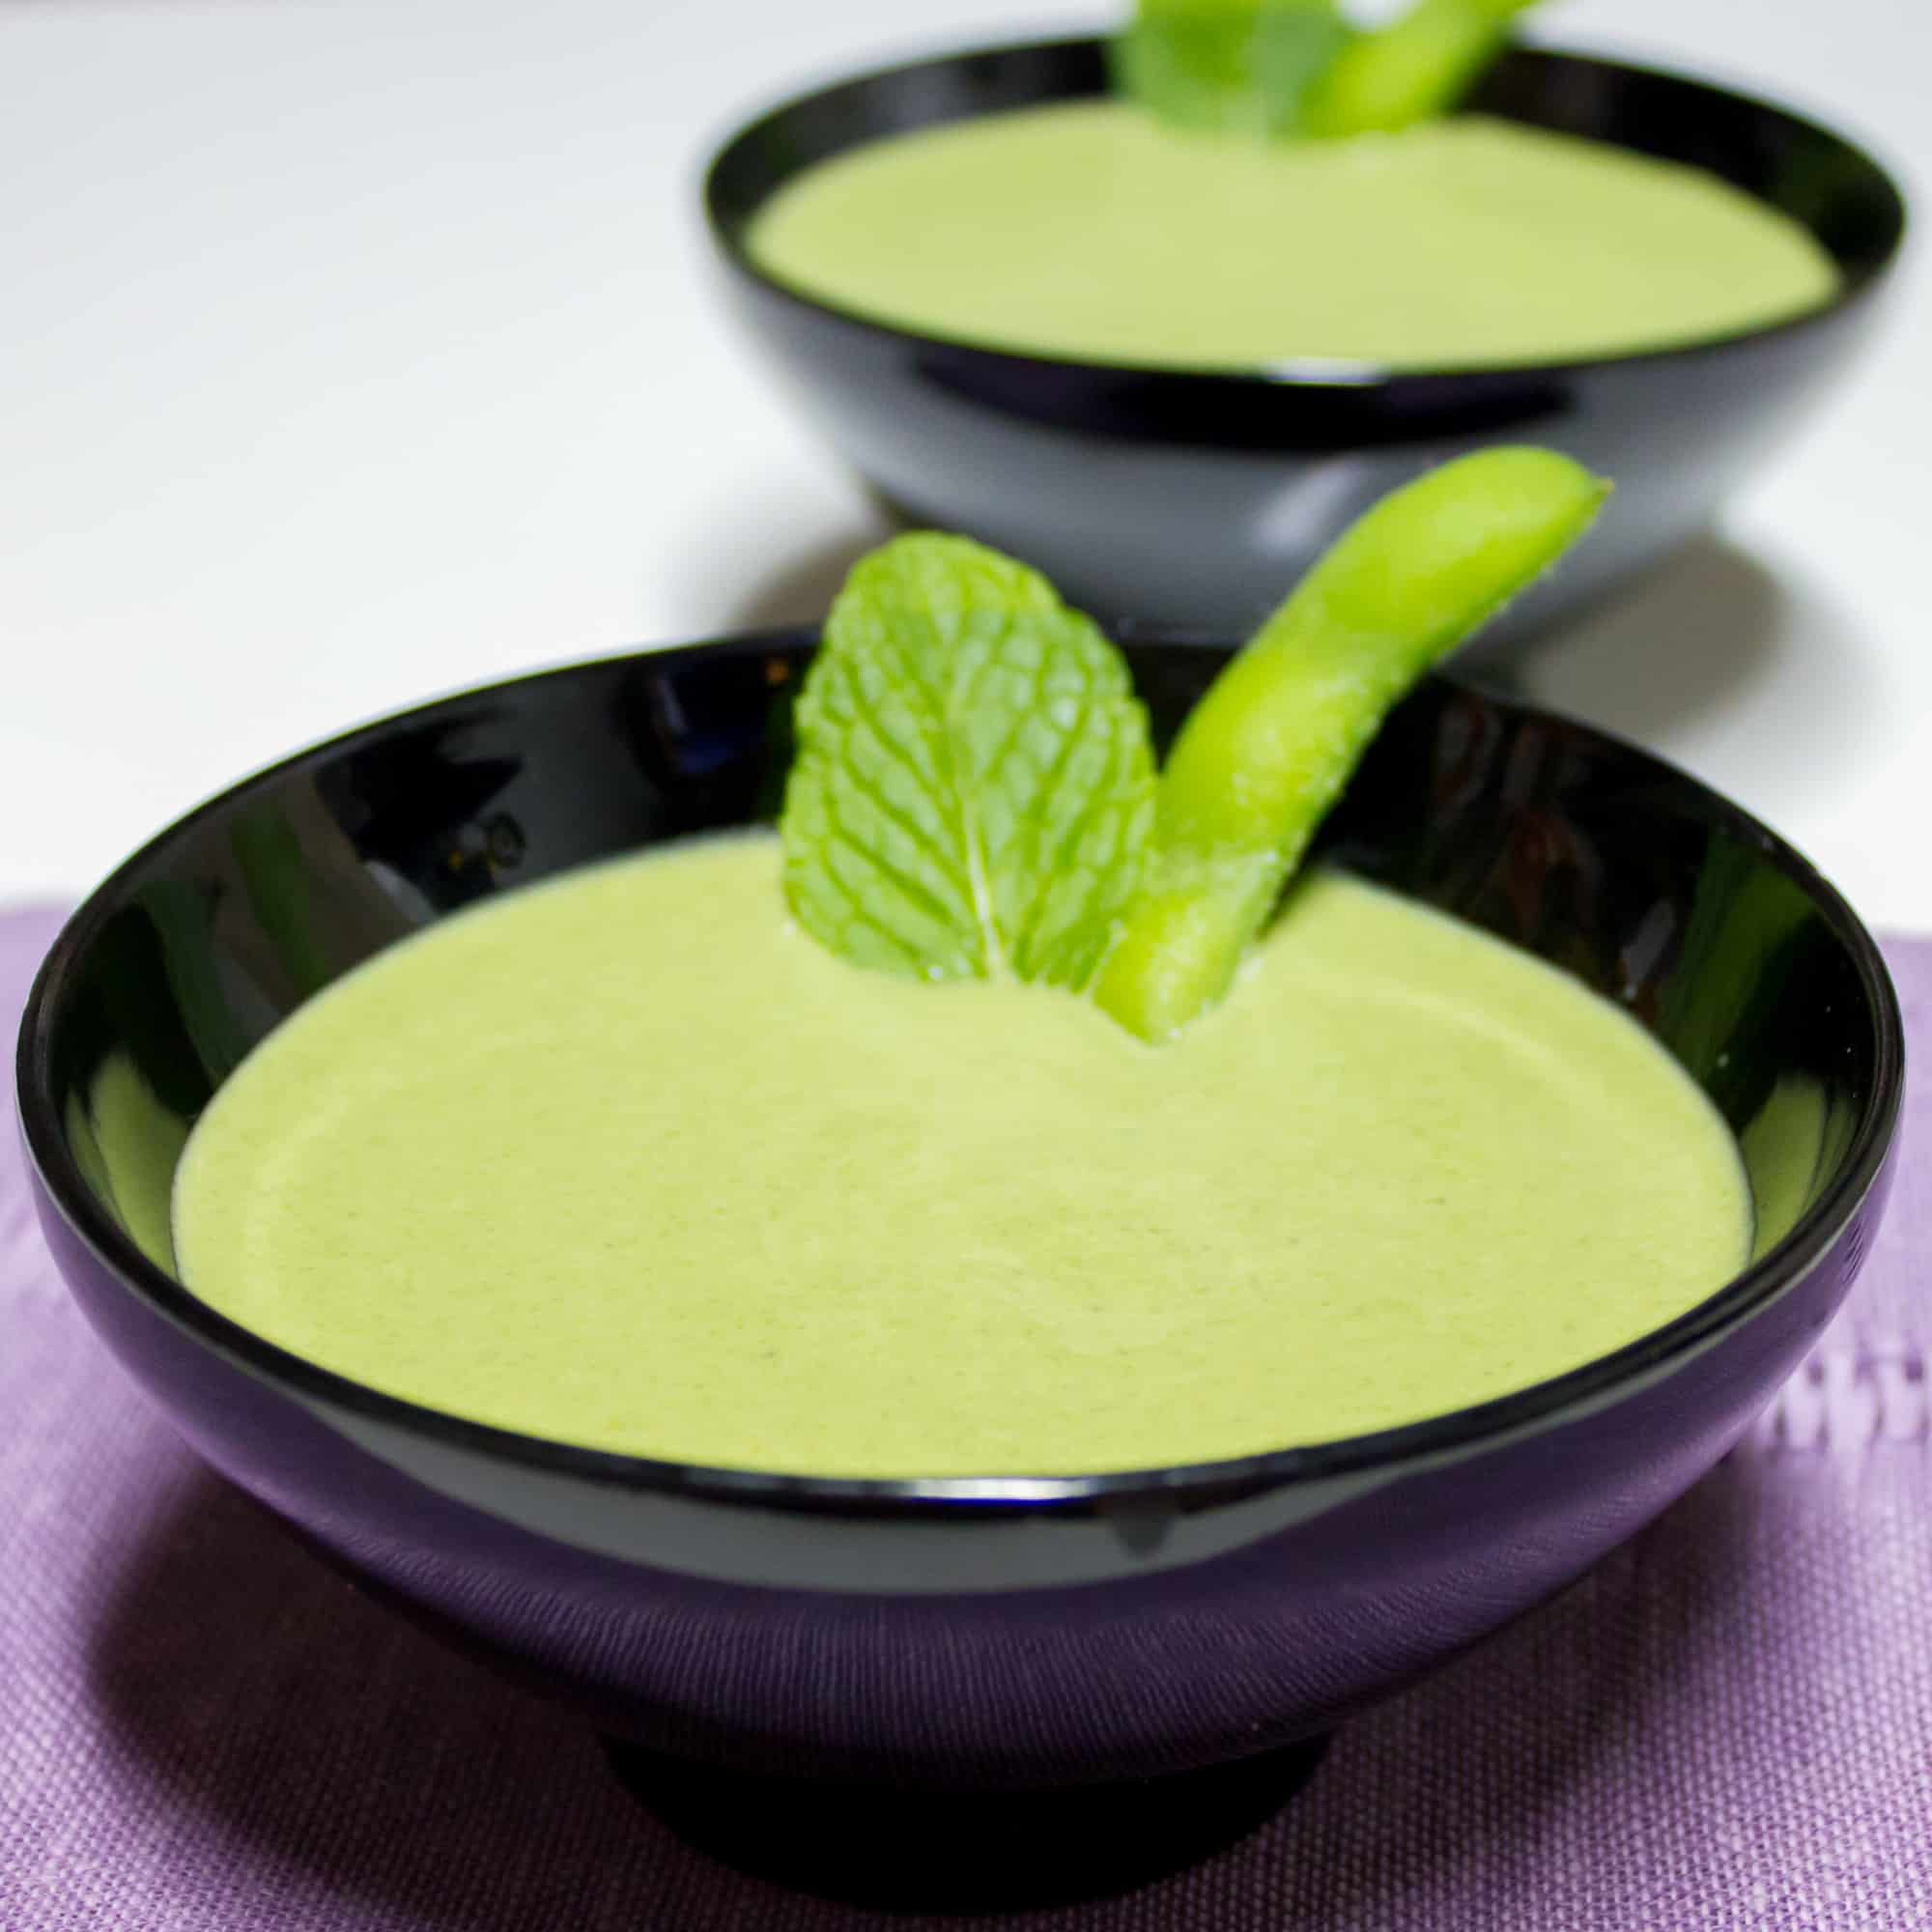 A smooth and creamy soup made with edamame and spinach. A silky texture and a hint of mint this soup is healthy and packed with protein and nutrients.